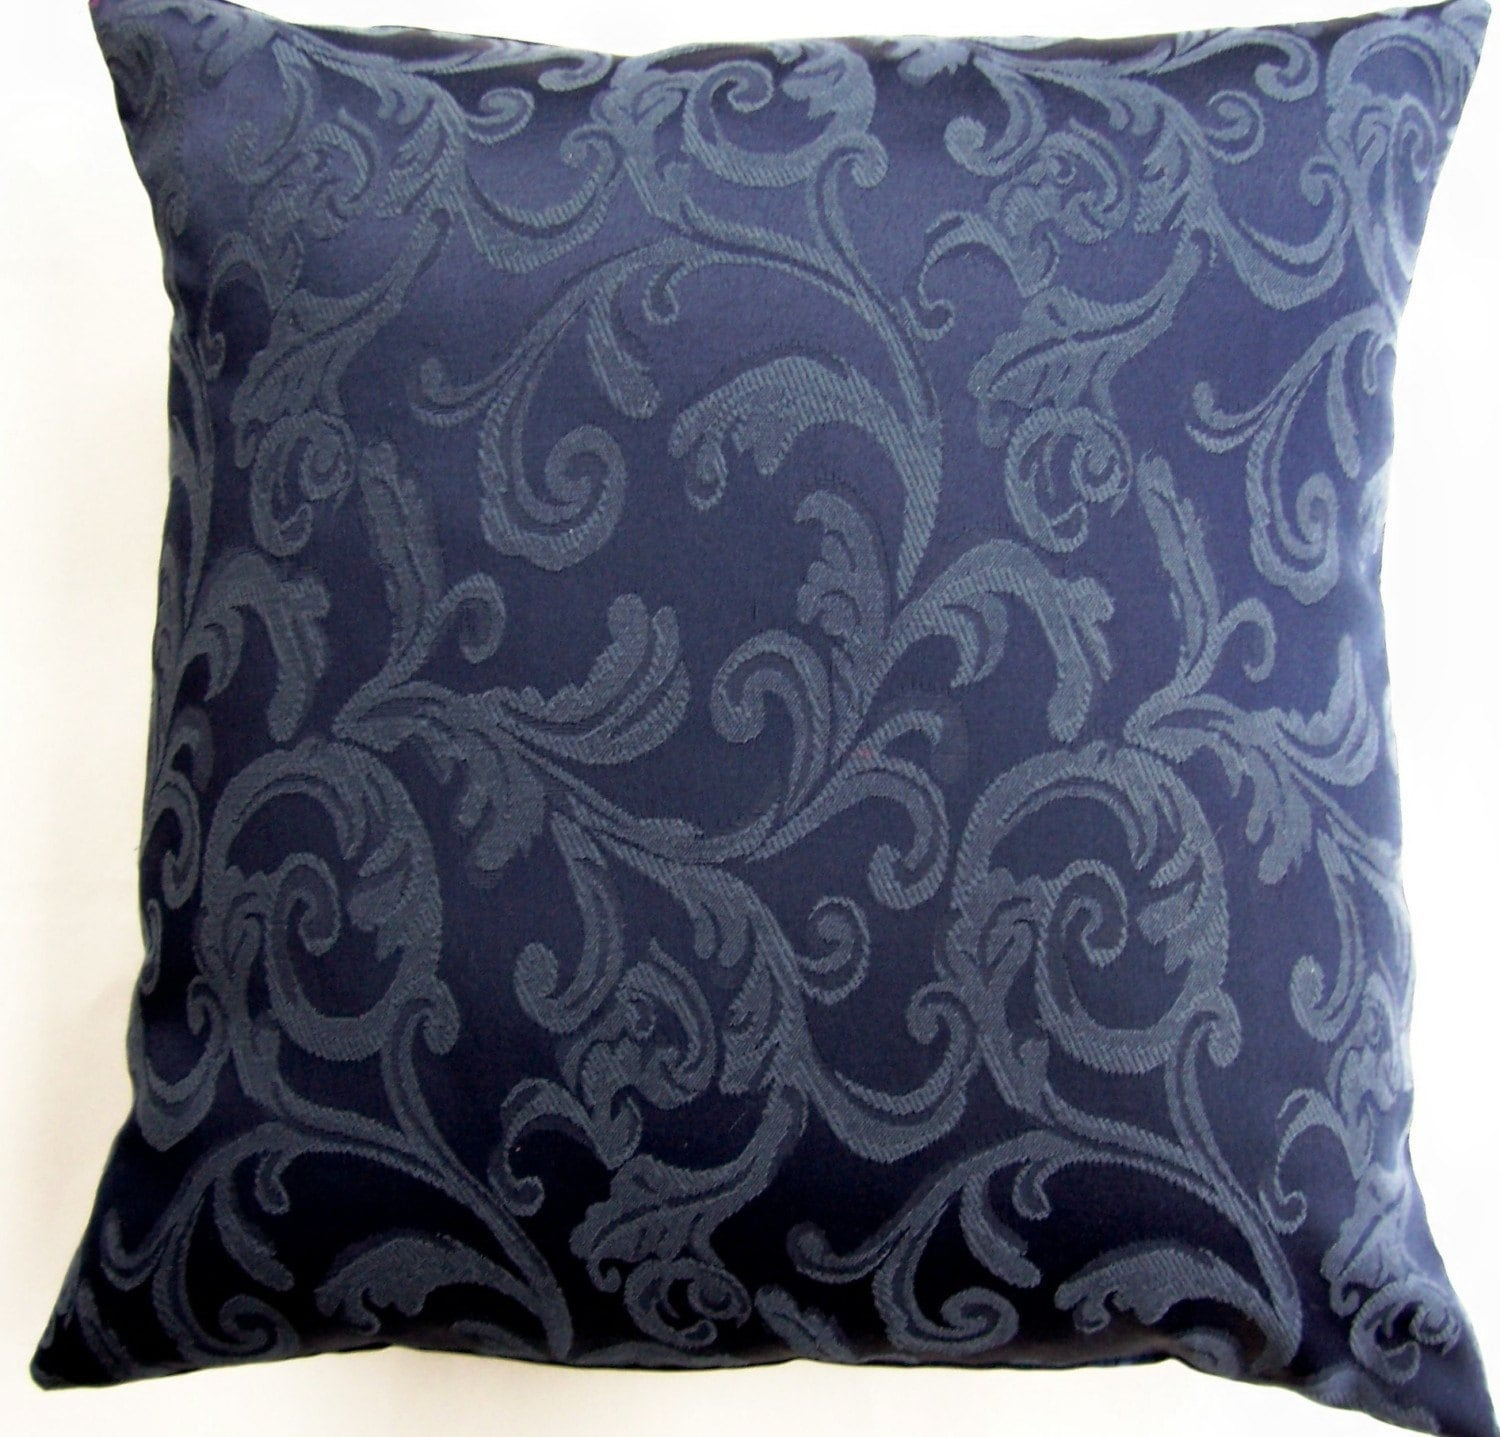 Decorative Pillows In Navy Blue : Dark Blue Throw Pillow Cover Navy Decorative by sassypillows